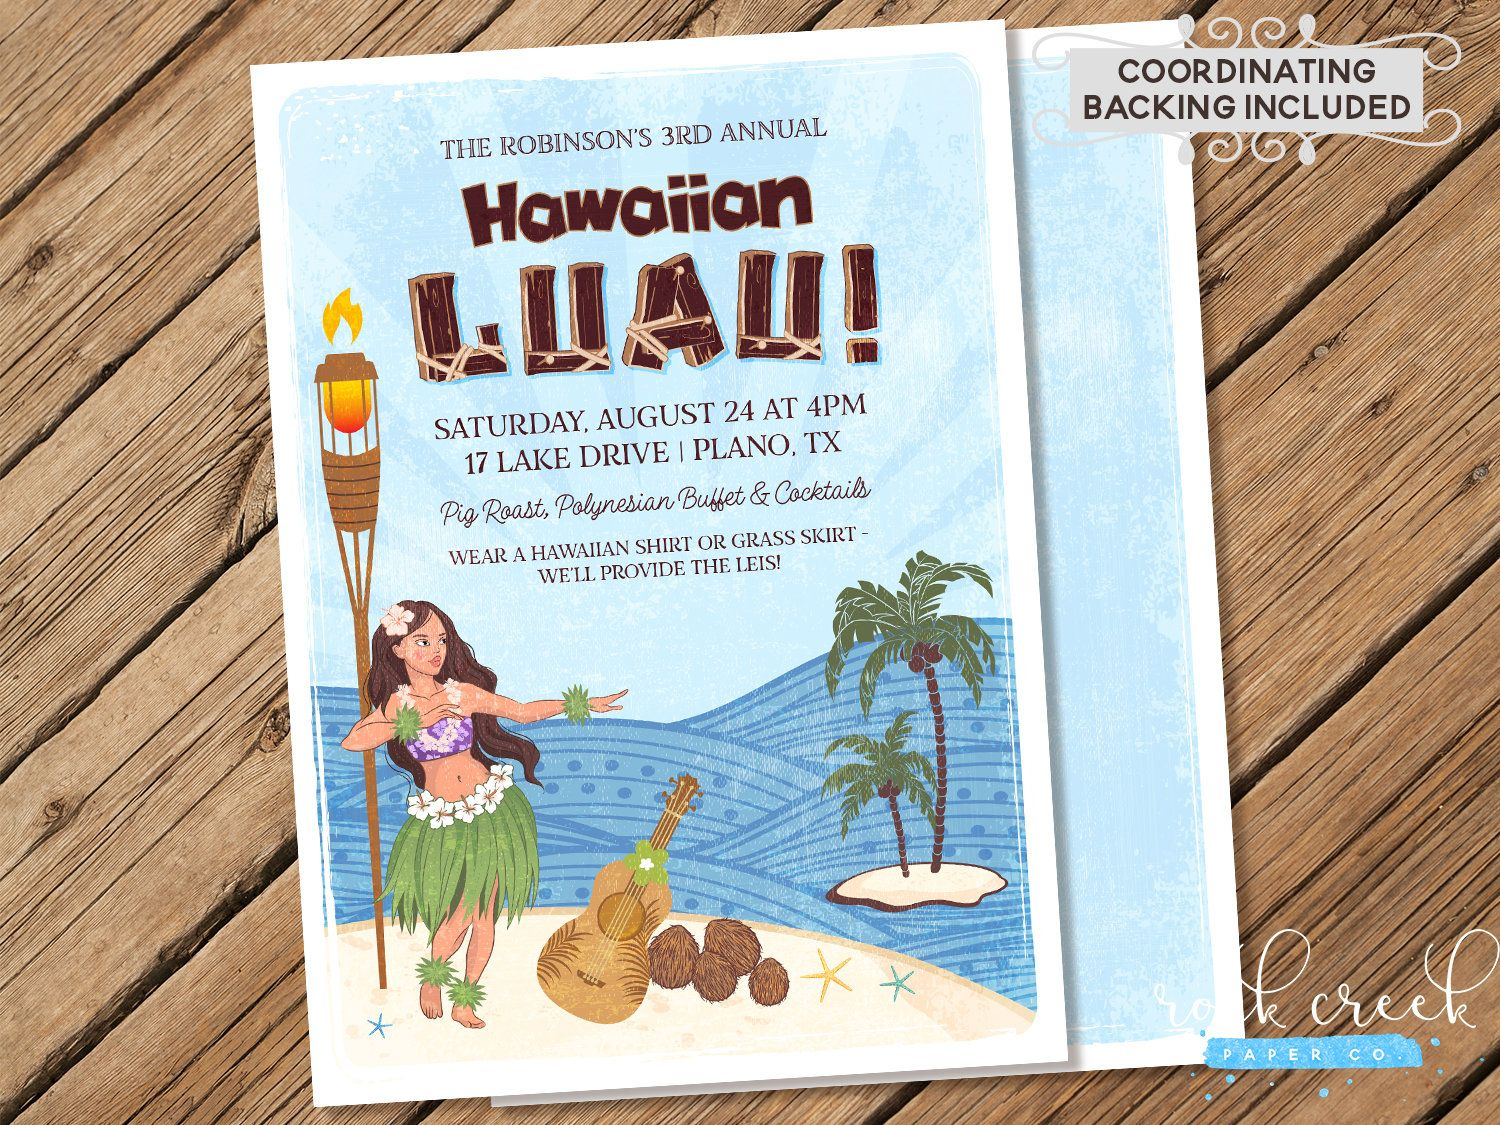 Hawaiian Luau Invitation, Luau Party, Hawaiian Luau Party, Hawaiian Party Invitation, Tropical Party, Printable Party Invitation #hawaiianluauparty